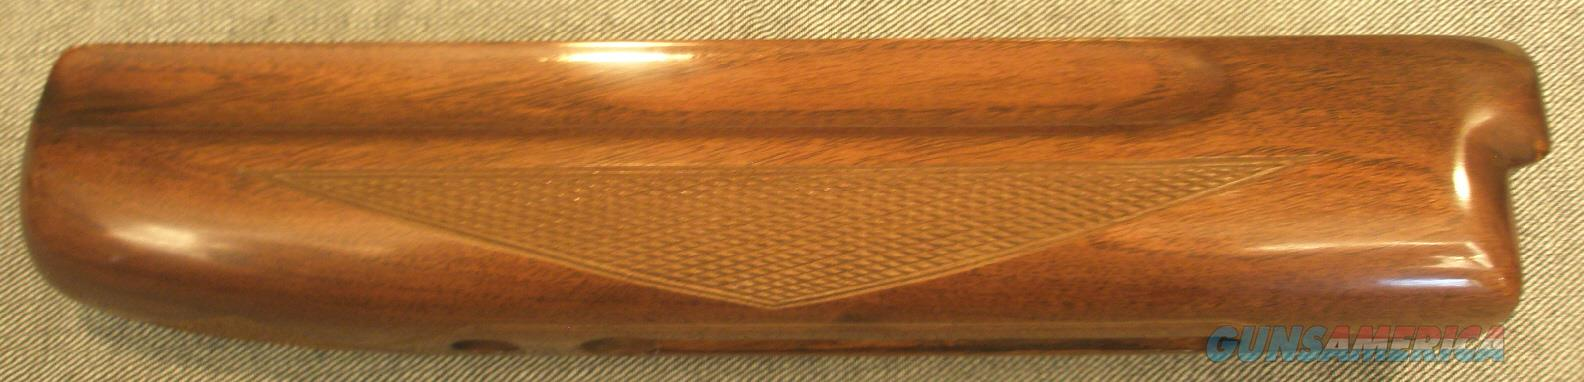 Winchester 101 20 ga forearm, NEW  Non-Guns > Gunstocks, Grips & Wood